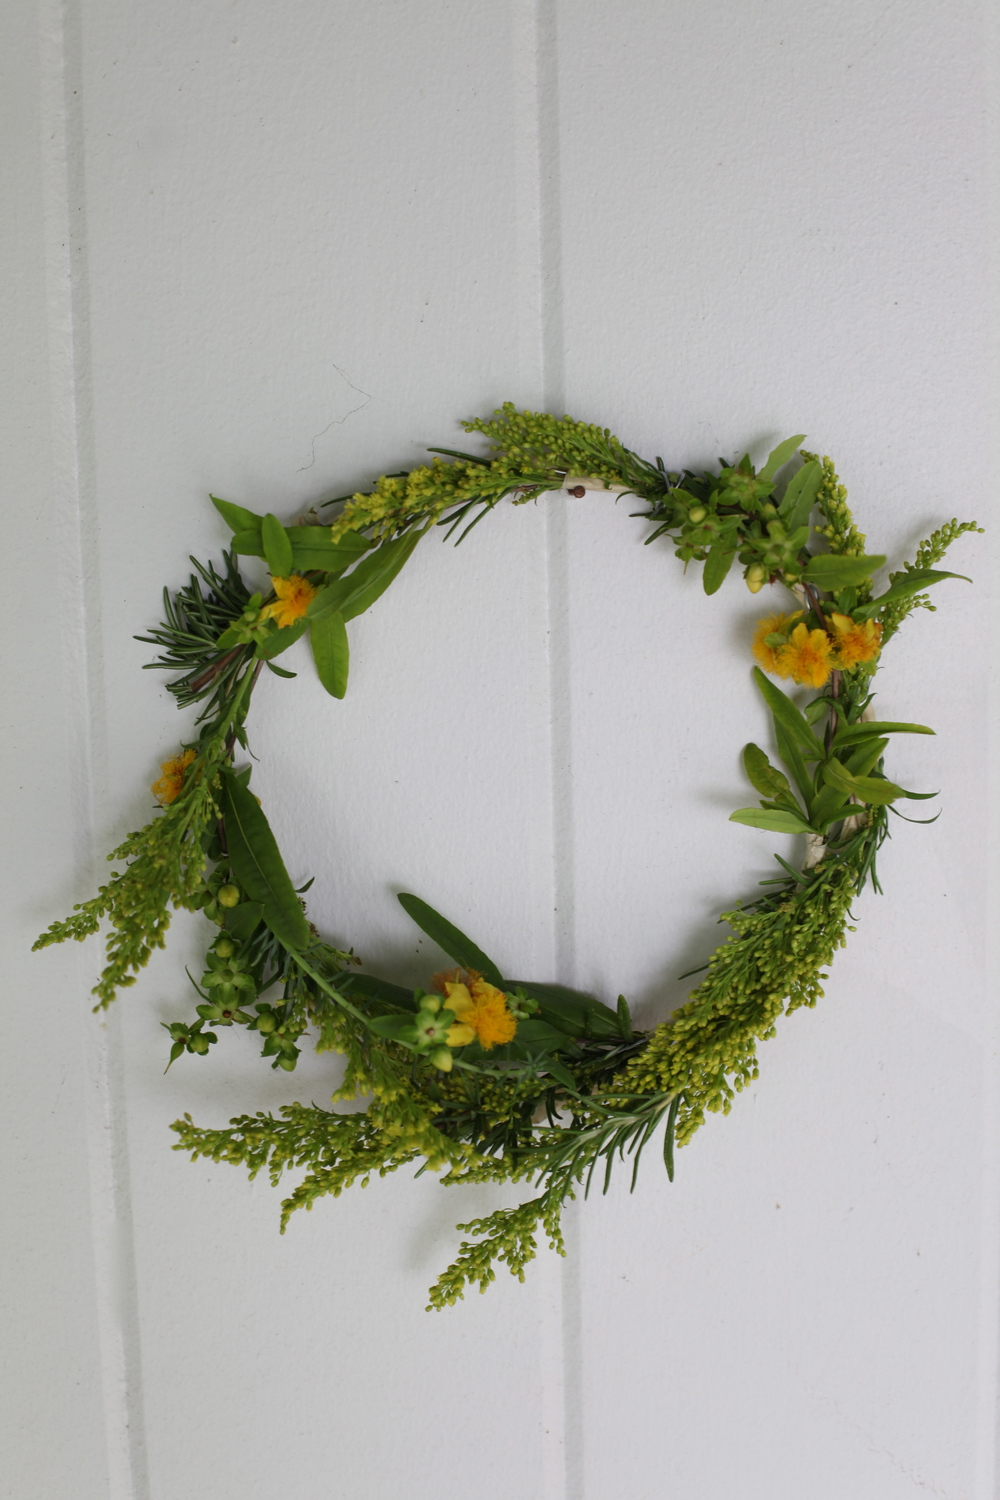 Floral Crown: St. John's Wort, Rosemary, Aster Solidago, and Donkey Tail.